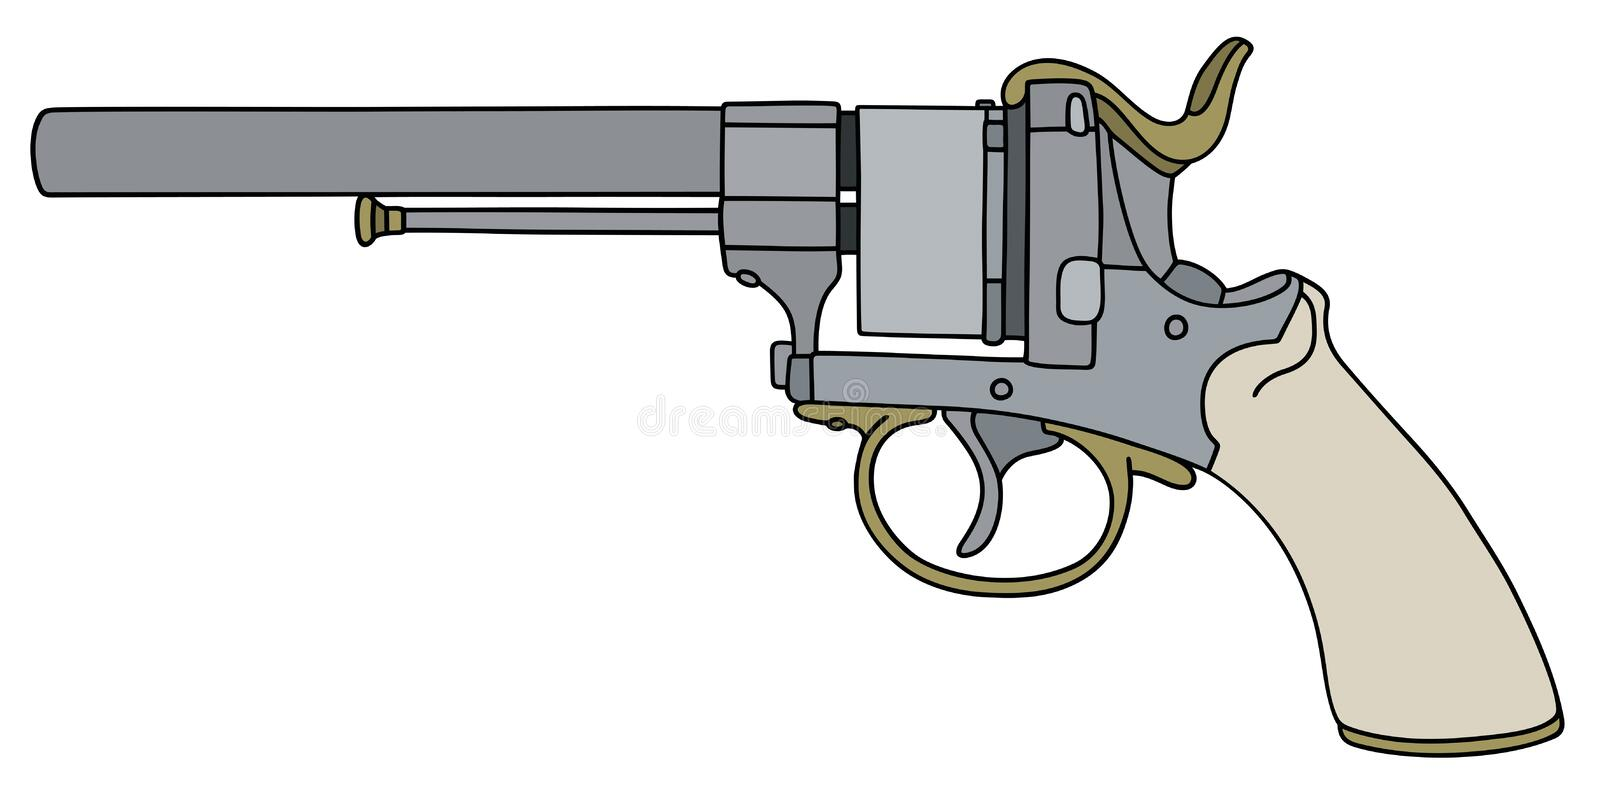 Classic revolver with a light handle. Hand drawing of a classic revolver royalty free illustration